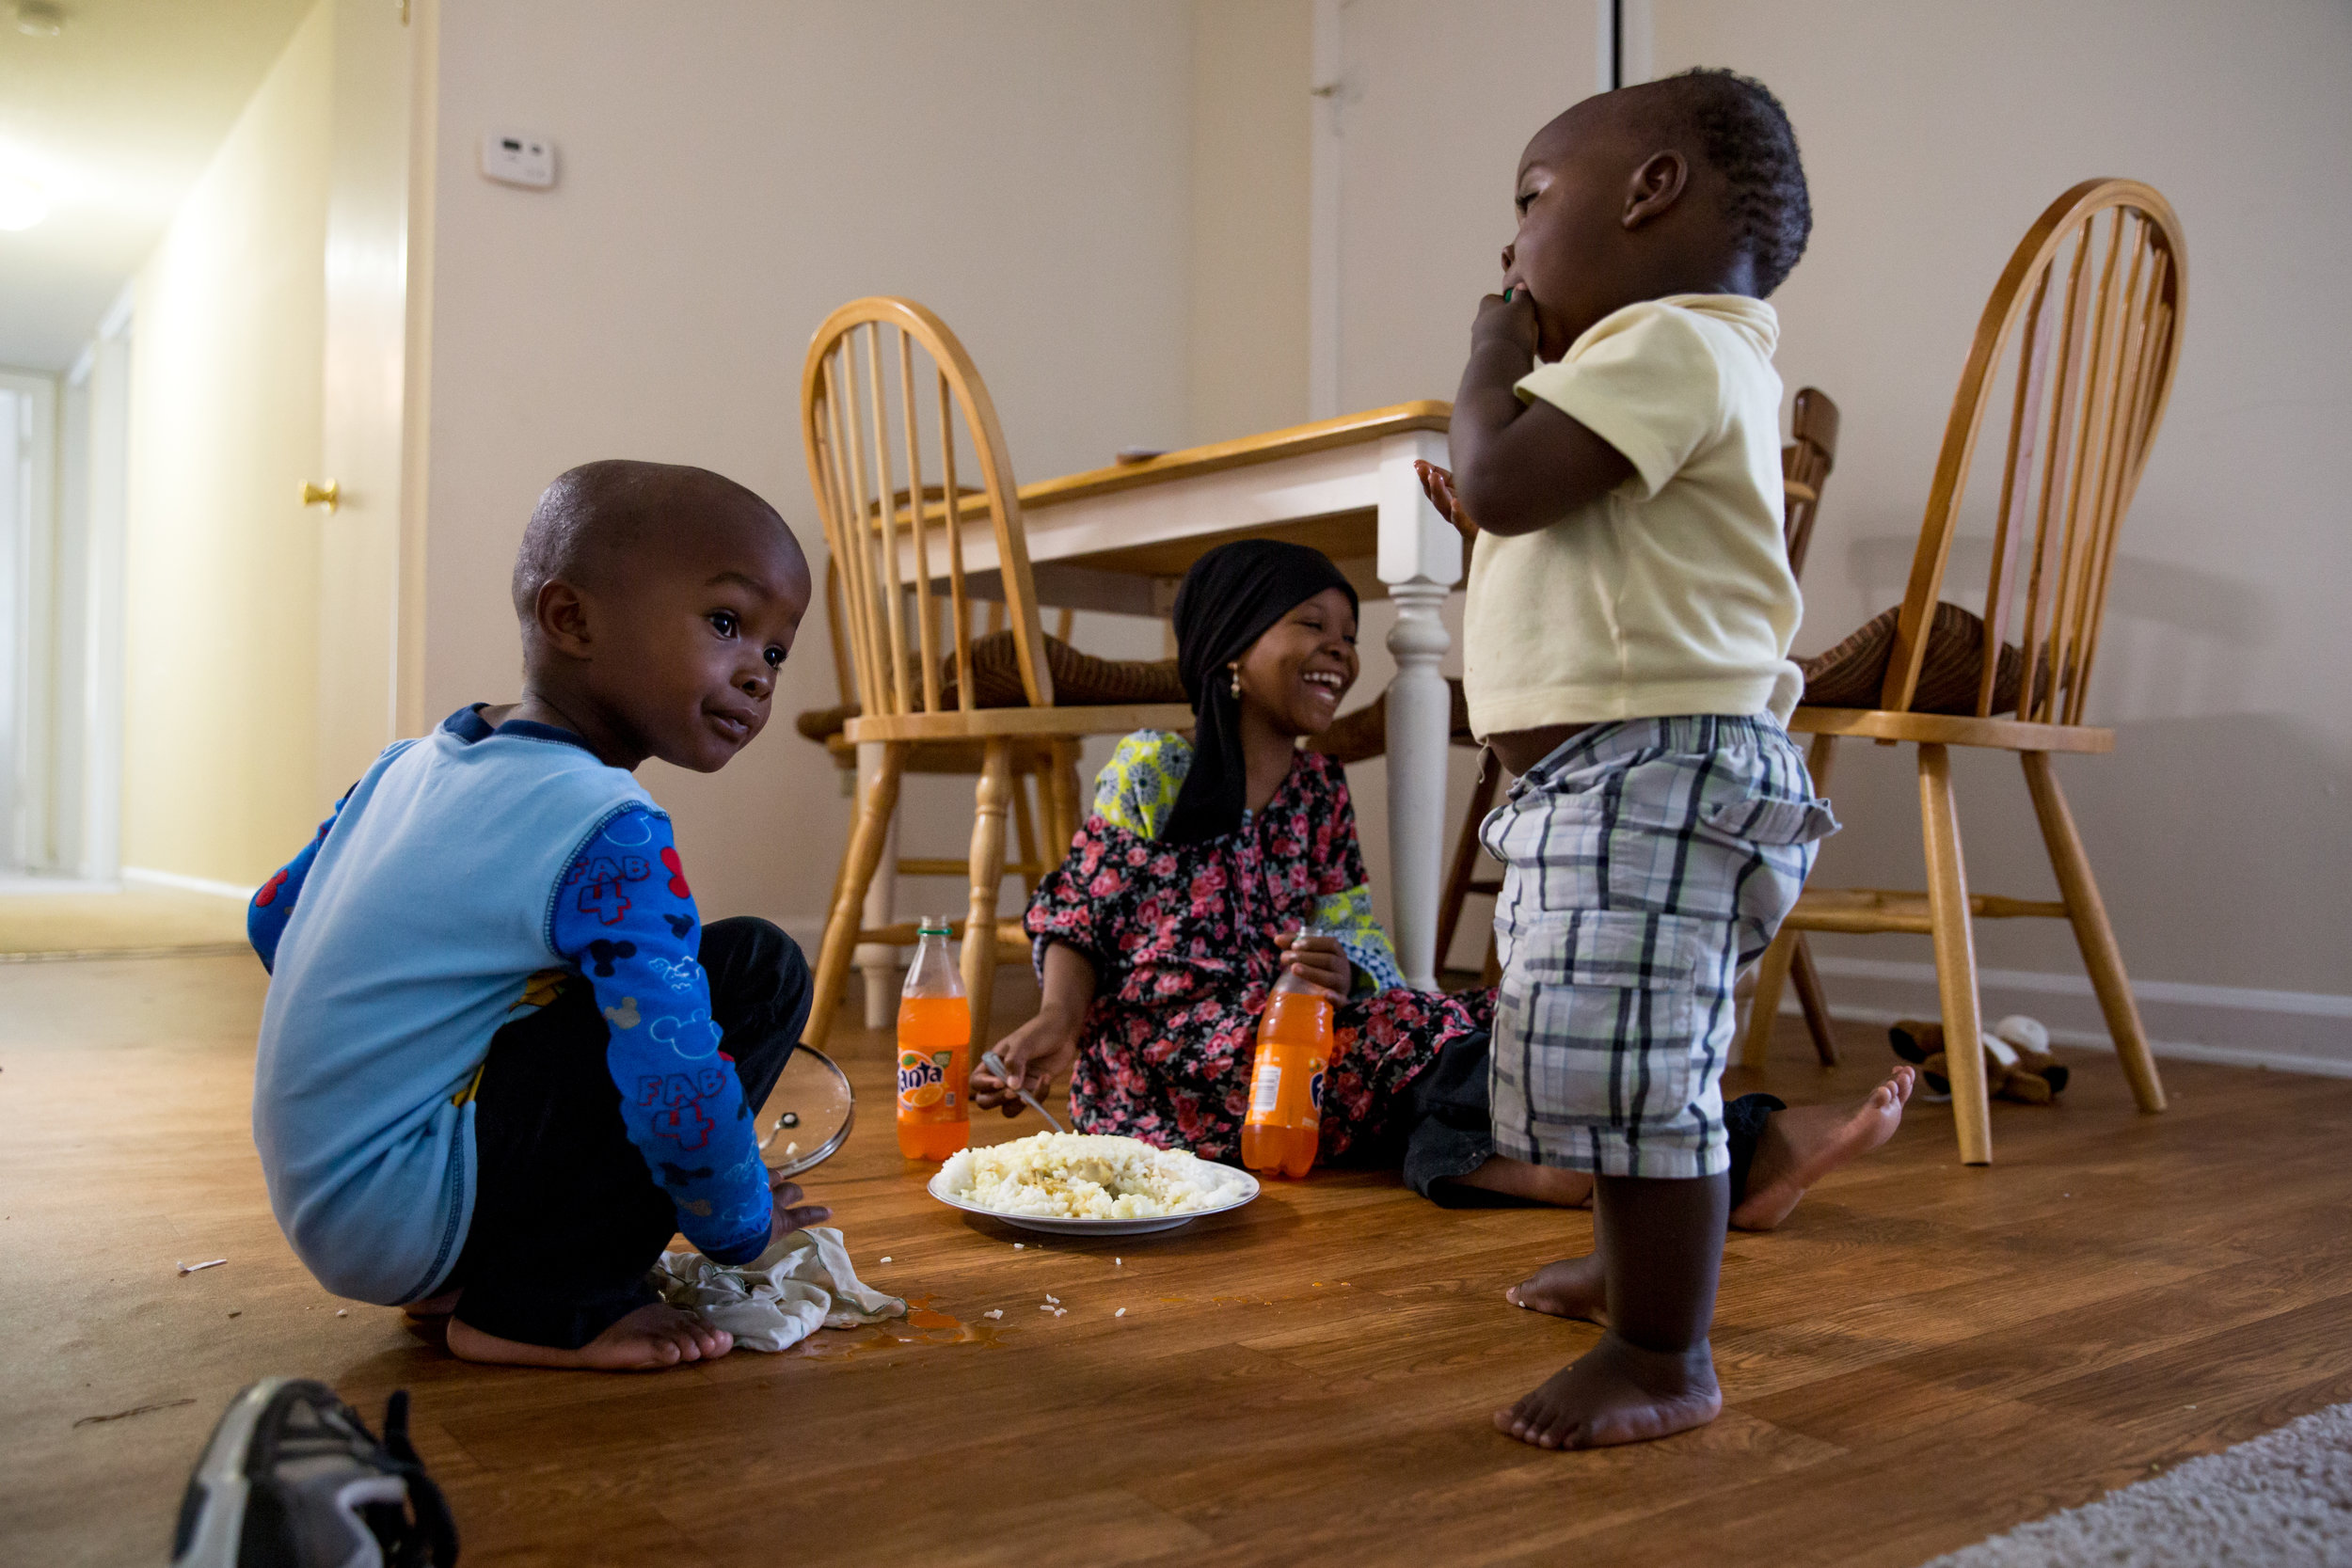 The family rarely uses tables. After eating on the ground in Kenya for 12 years, they still prefer the floor.